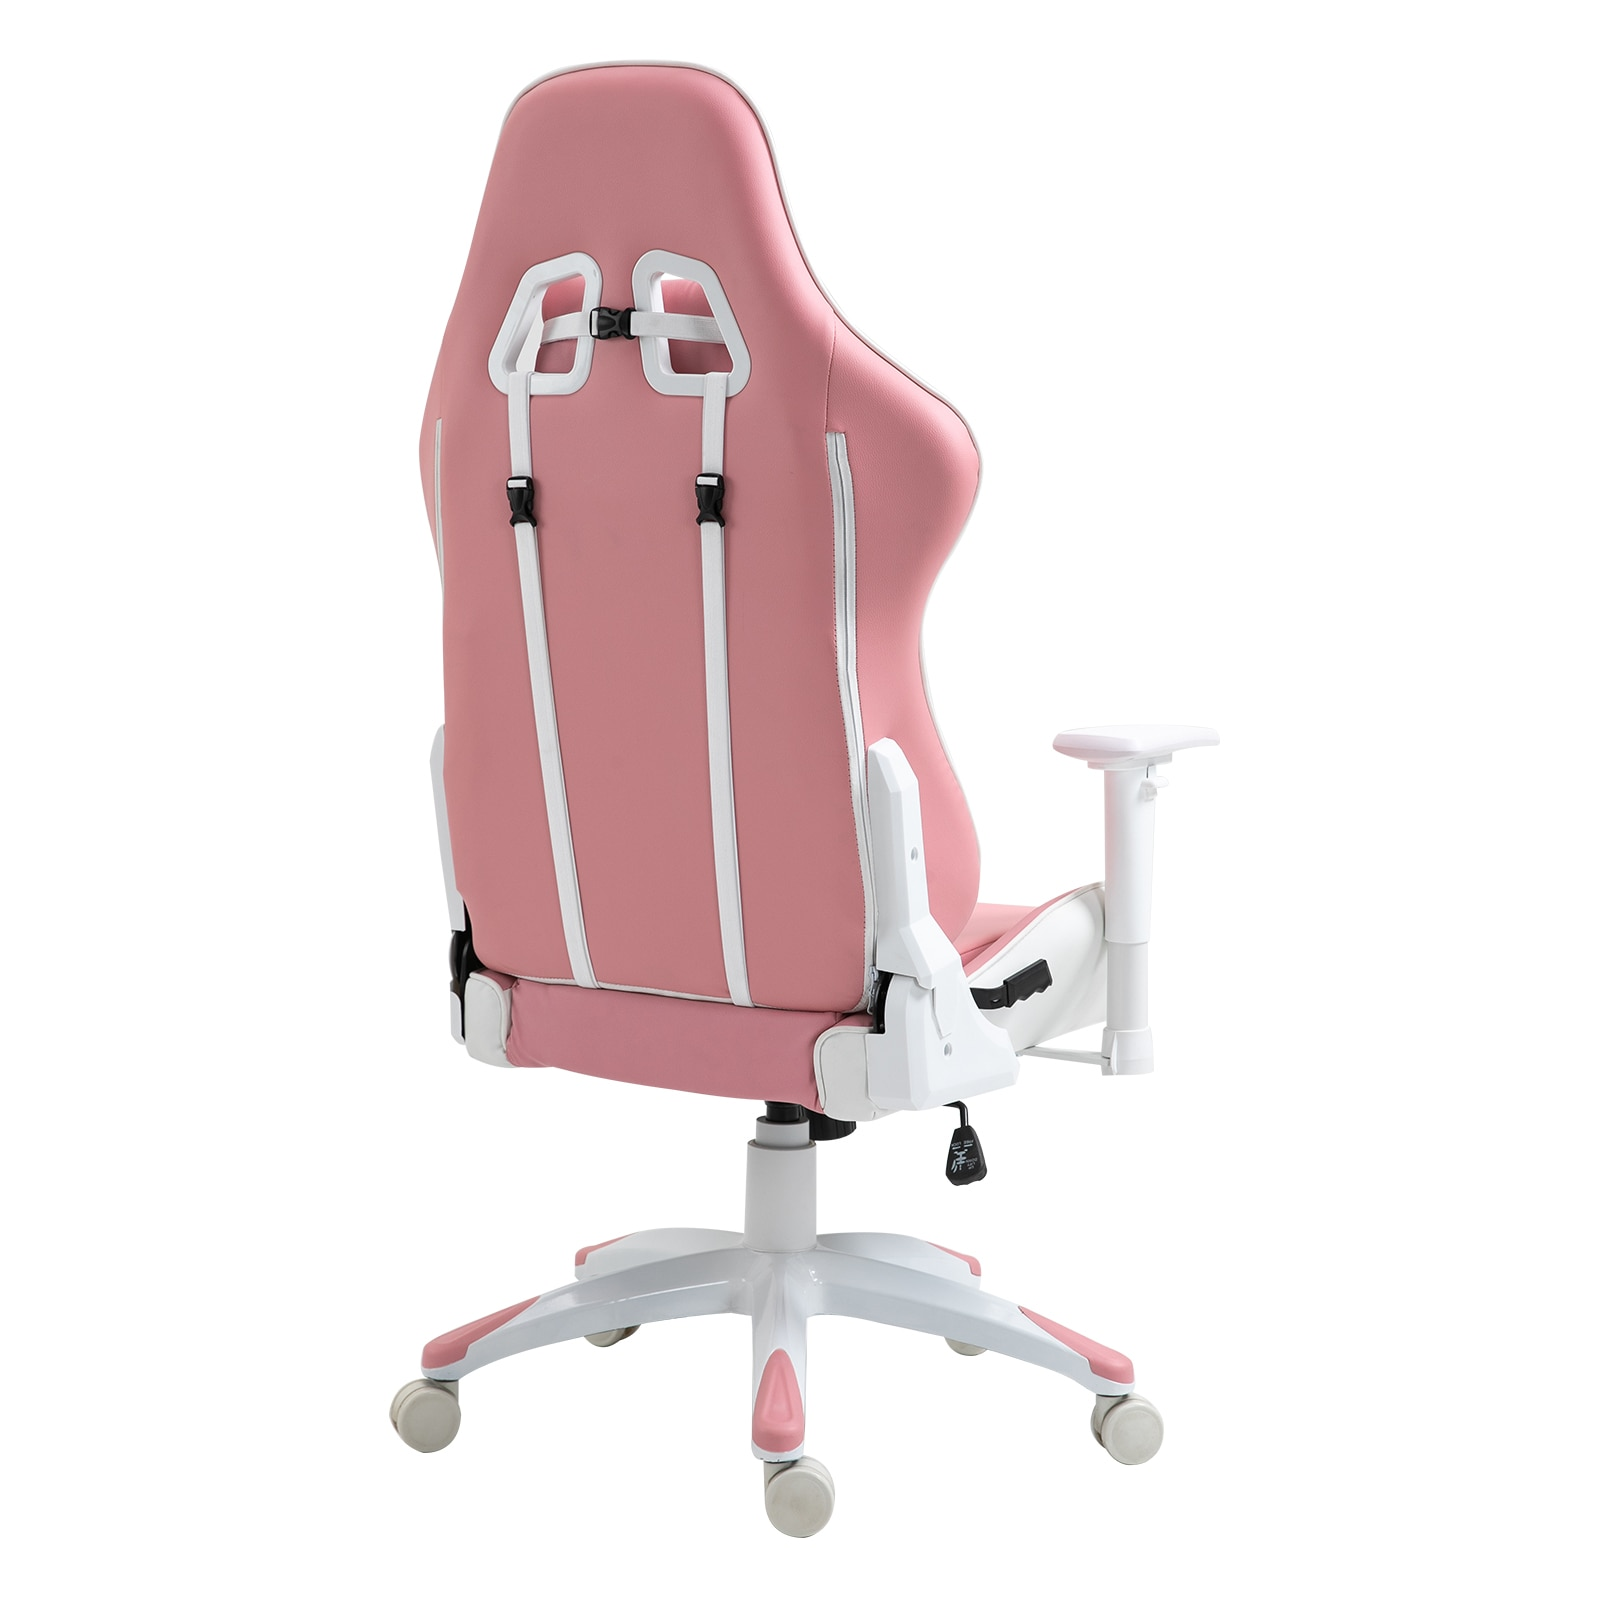 H02afc64b7be645ae9ea5981413123dd8e - Sigtua Pink Gaming Office Chair Height-adjustable Armrests Computer Chair Ergonomic Swivel Executive Chair with High Backrest